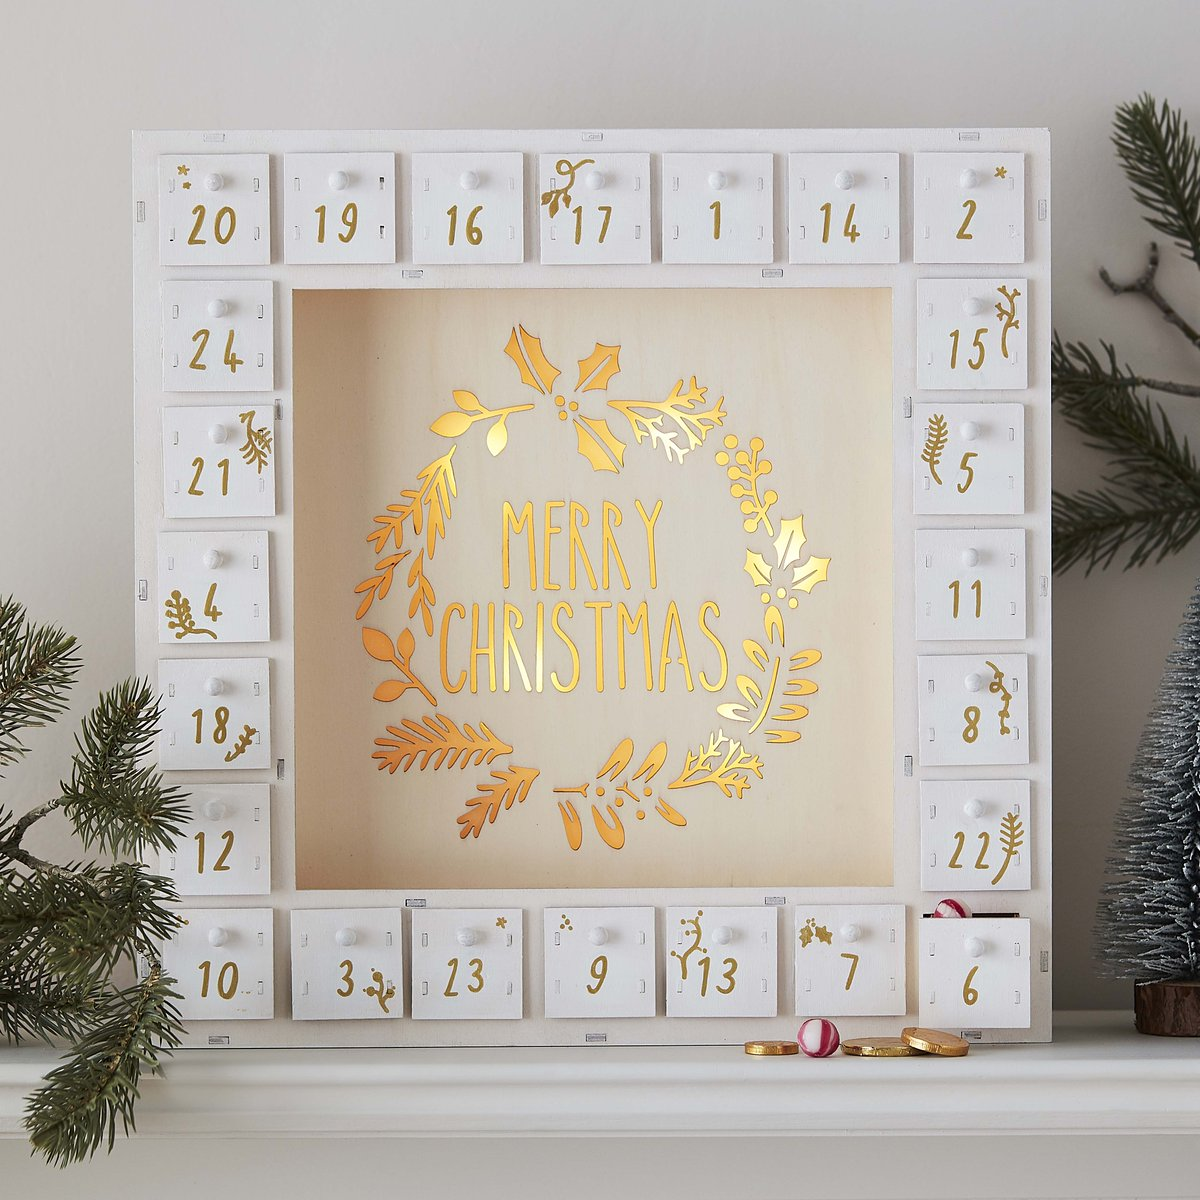 Spark off the holiday excitement with this fab LED Merry Christmas Advent Calendar!  Shop in-store and online while stocks last: https://t.co/vob1R1mdwS  #CraftTogether #Advent #Hobbycraft https://t.co/ui2uTVnqYA